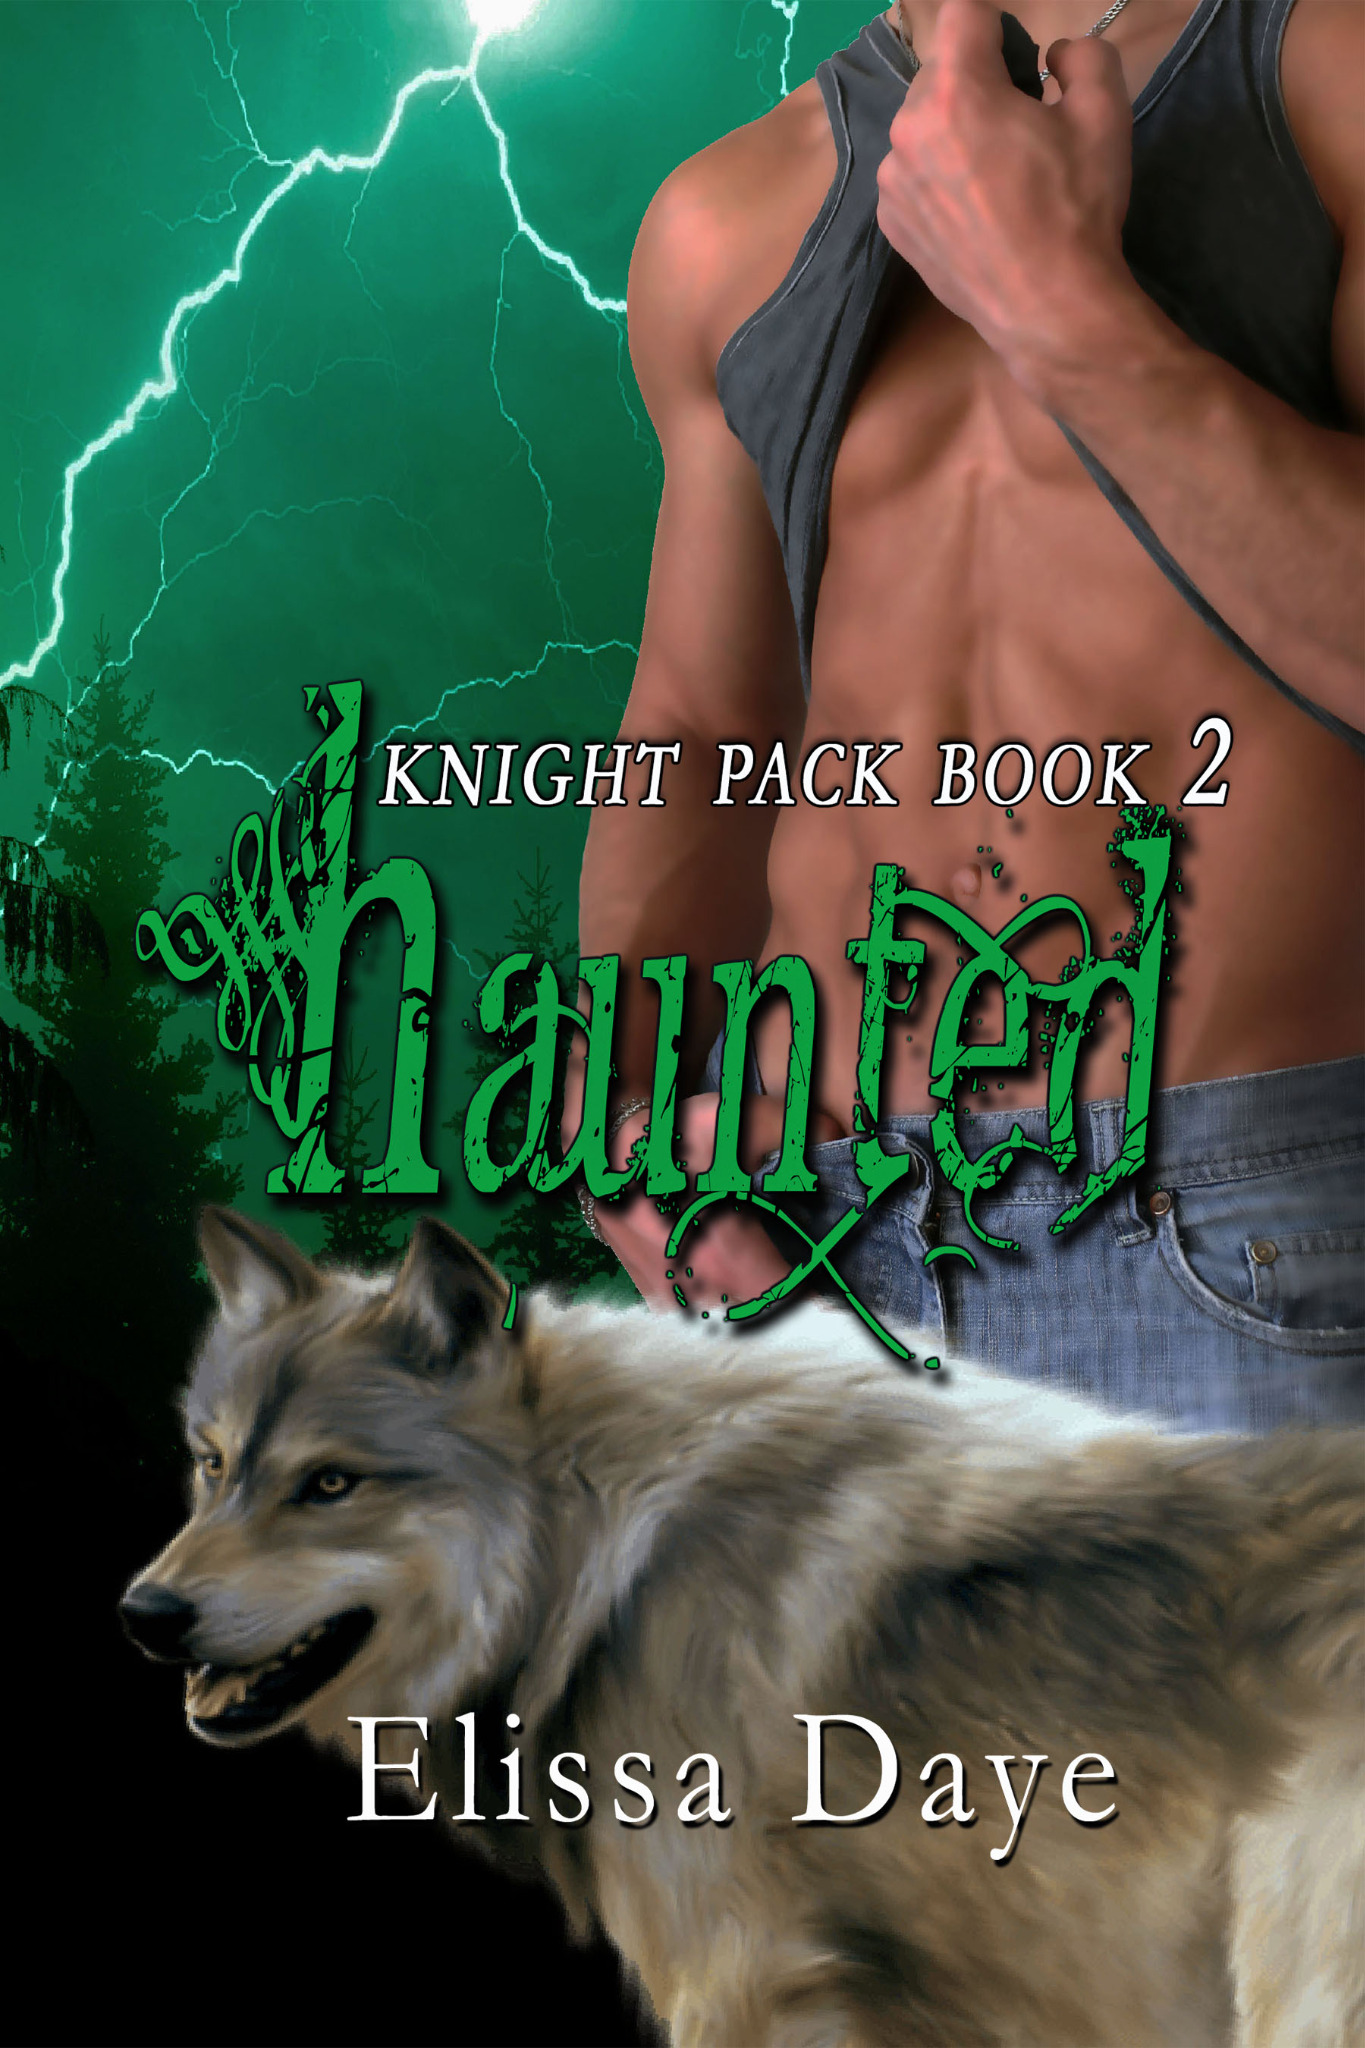 Haunted - Knight Pack Book 2